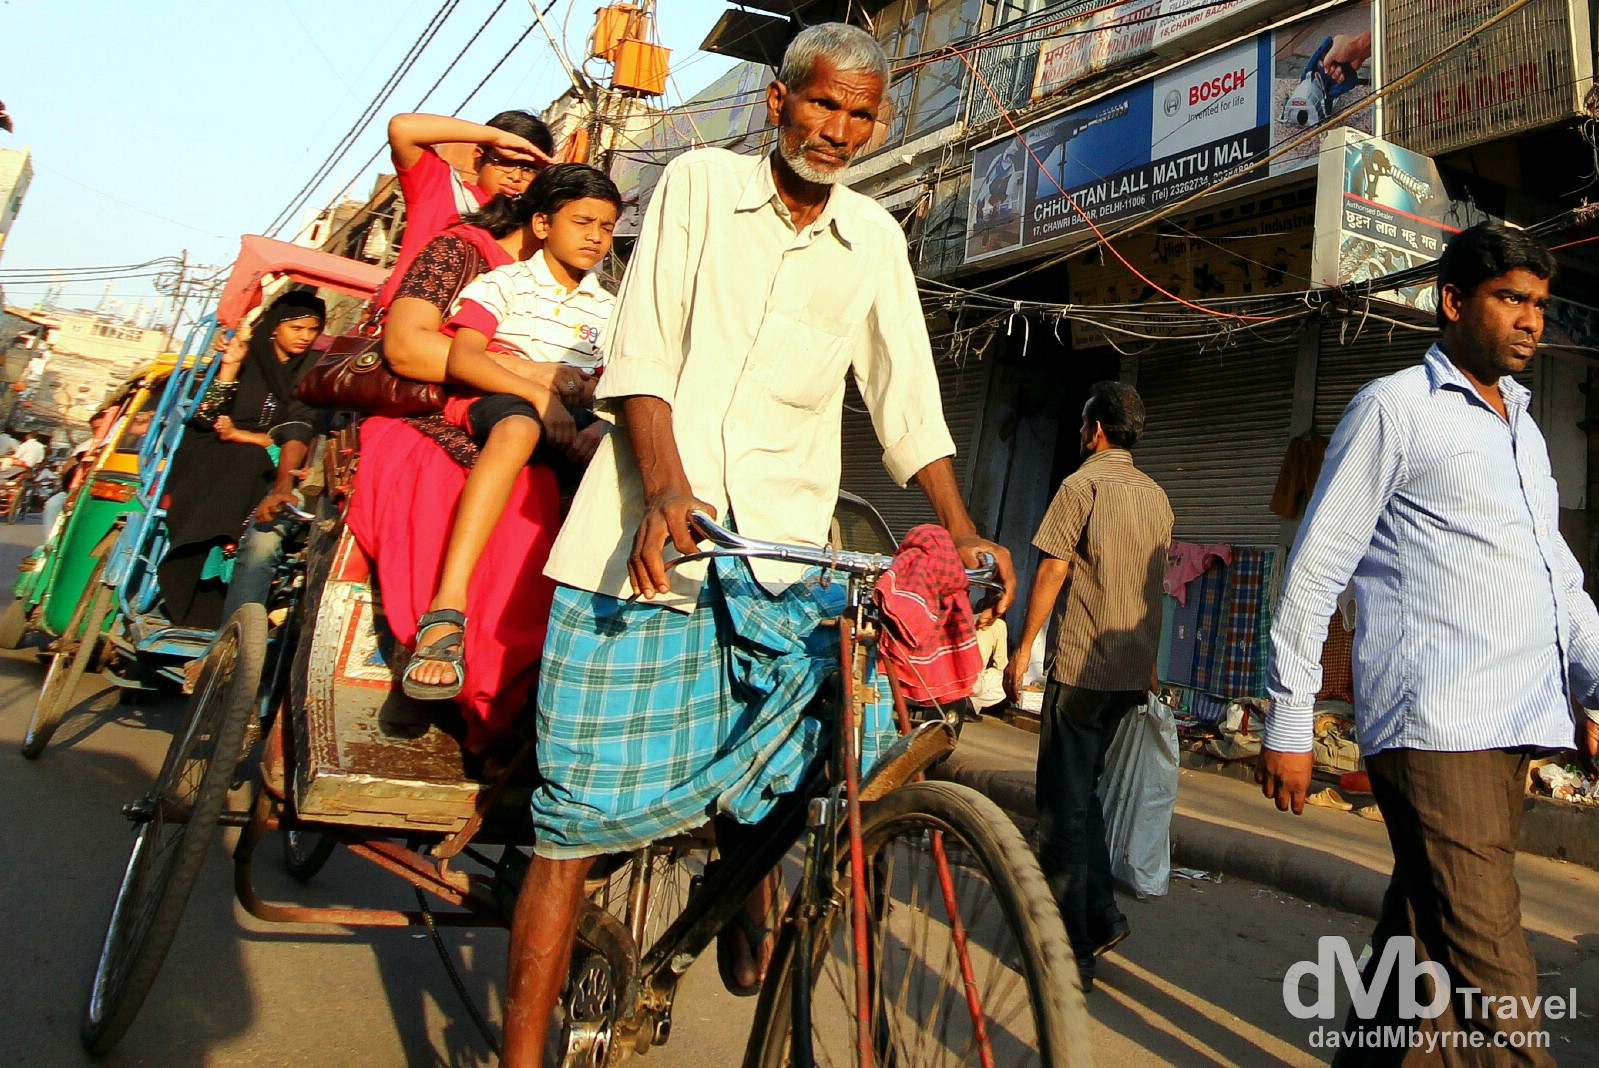 A cyclo (cycle rickshaw) on the streets of Old Delhi, Delhi, India. October 7th 2012.